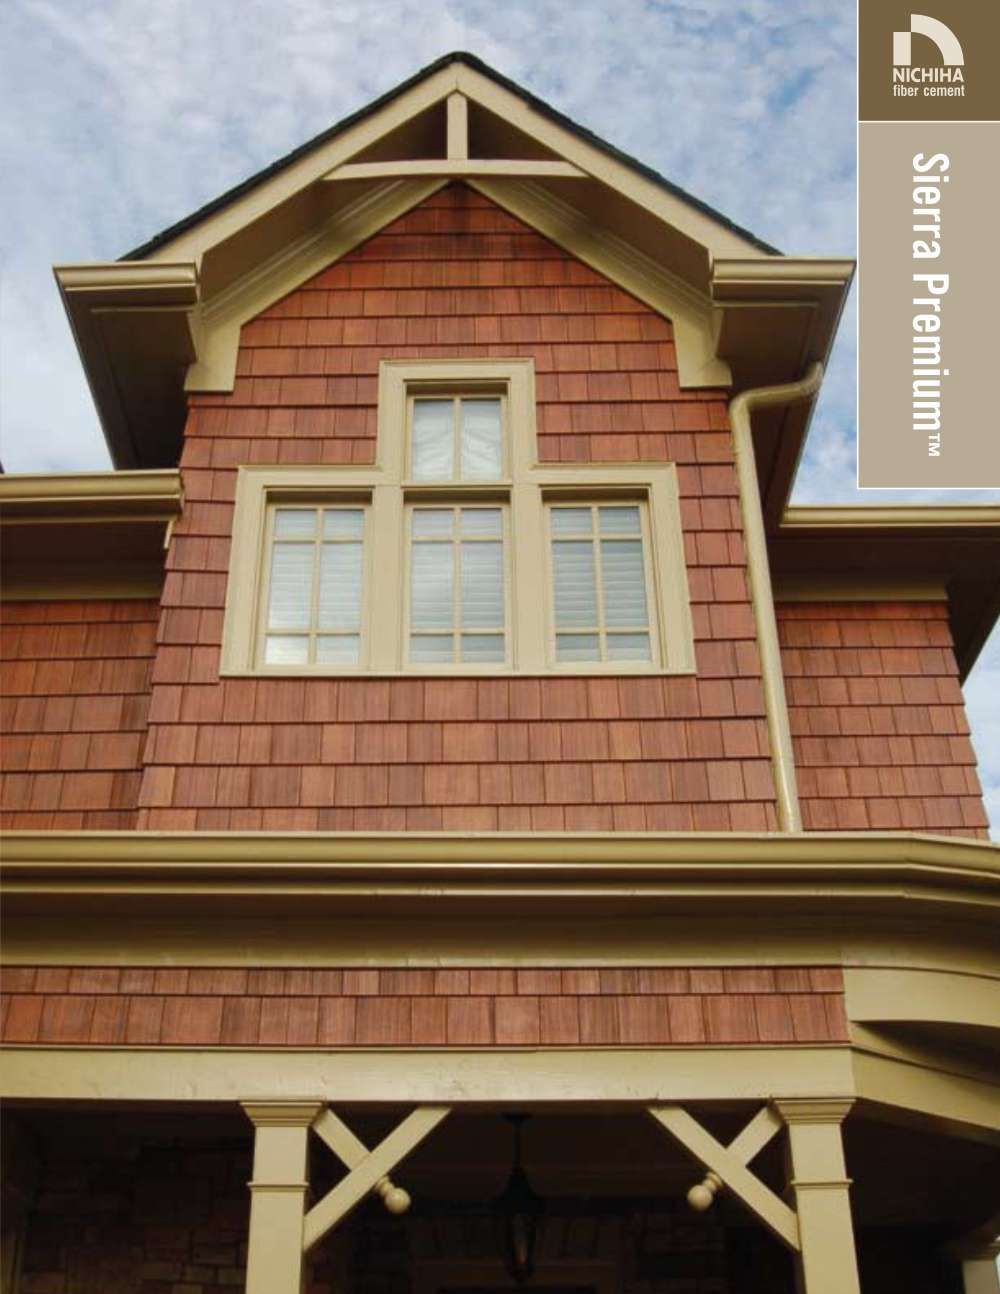 Can You Believe That Is Cement Siding Instead Of Wood What A Great Idea All The Beauty And None O Shingle Siding House Designs Exterior Window Trim Exterior